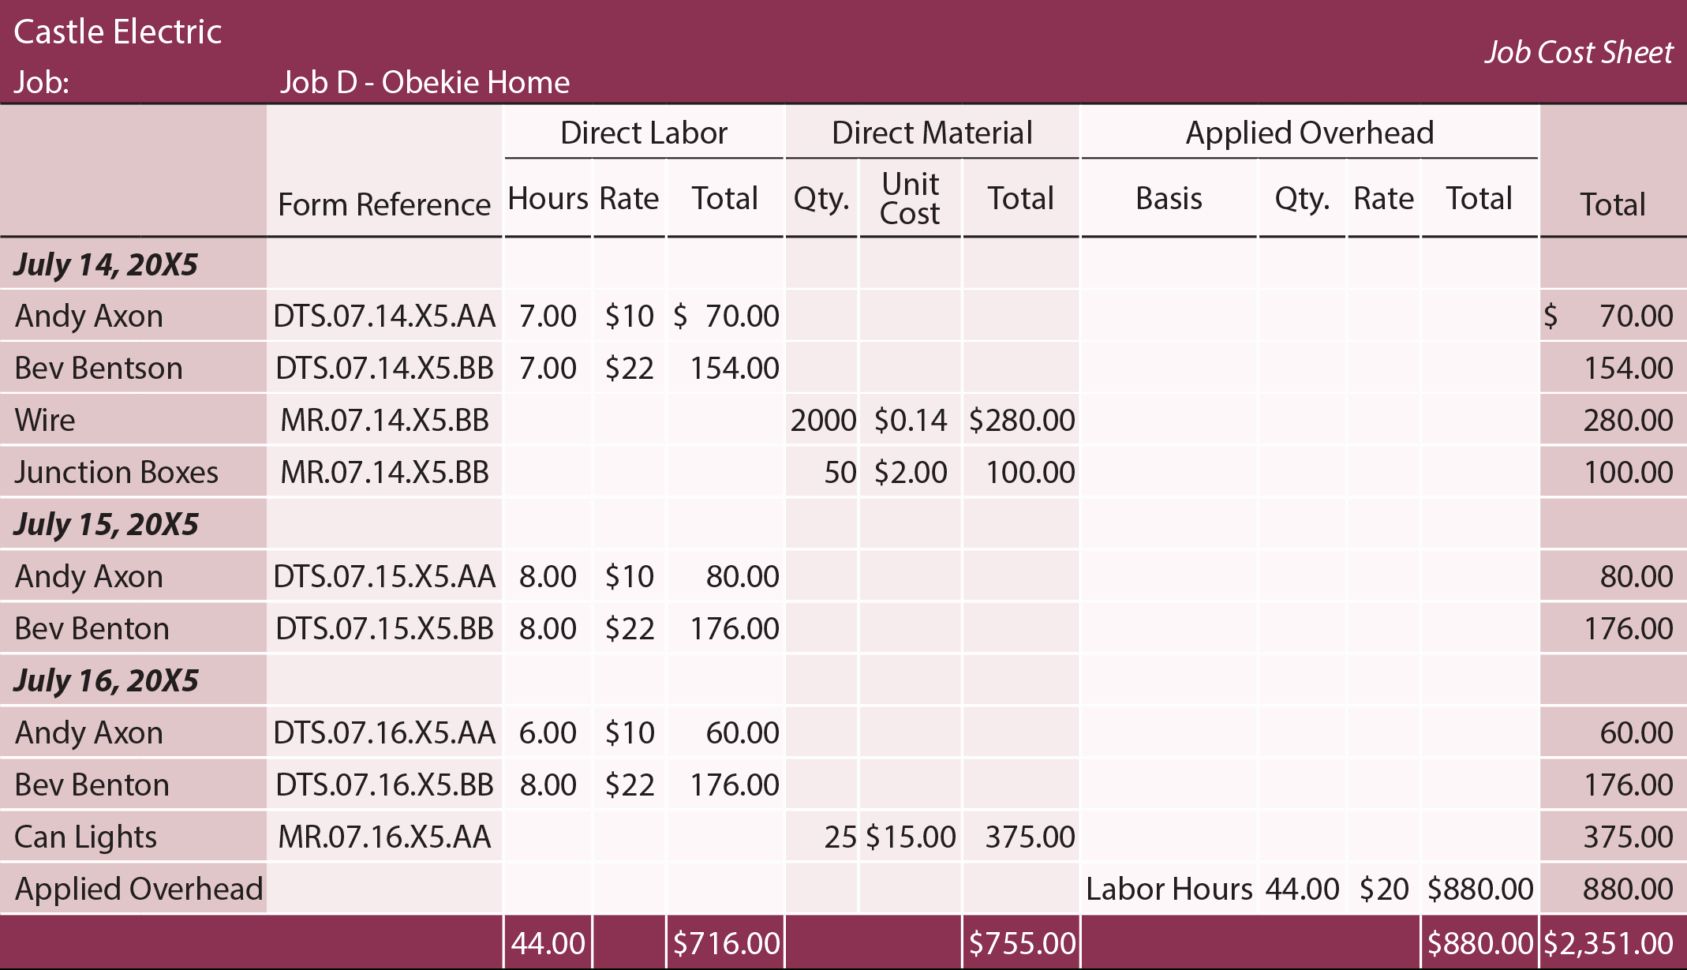 Job Cost Sheet Template New Labor and Material Cost Spreadsheet 2 Google Spreadshee